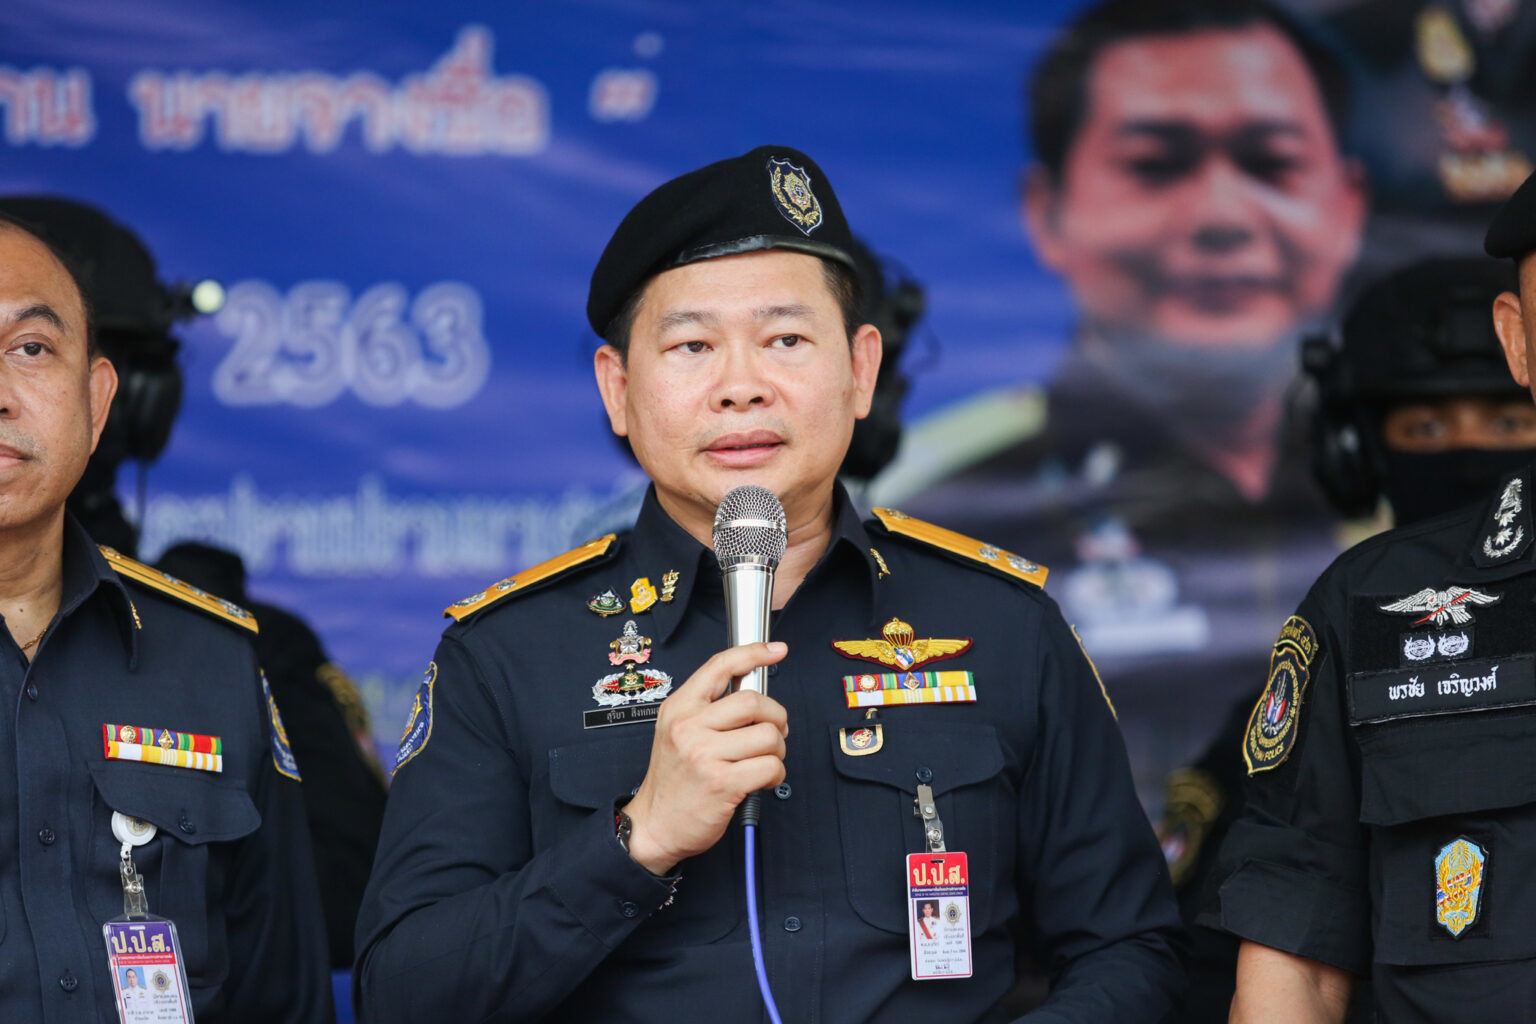 Police seize drug lord's assets valued at 130 million baht | News by Thaiger